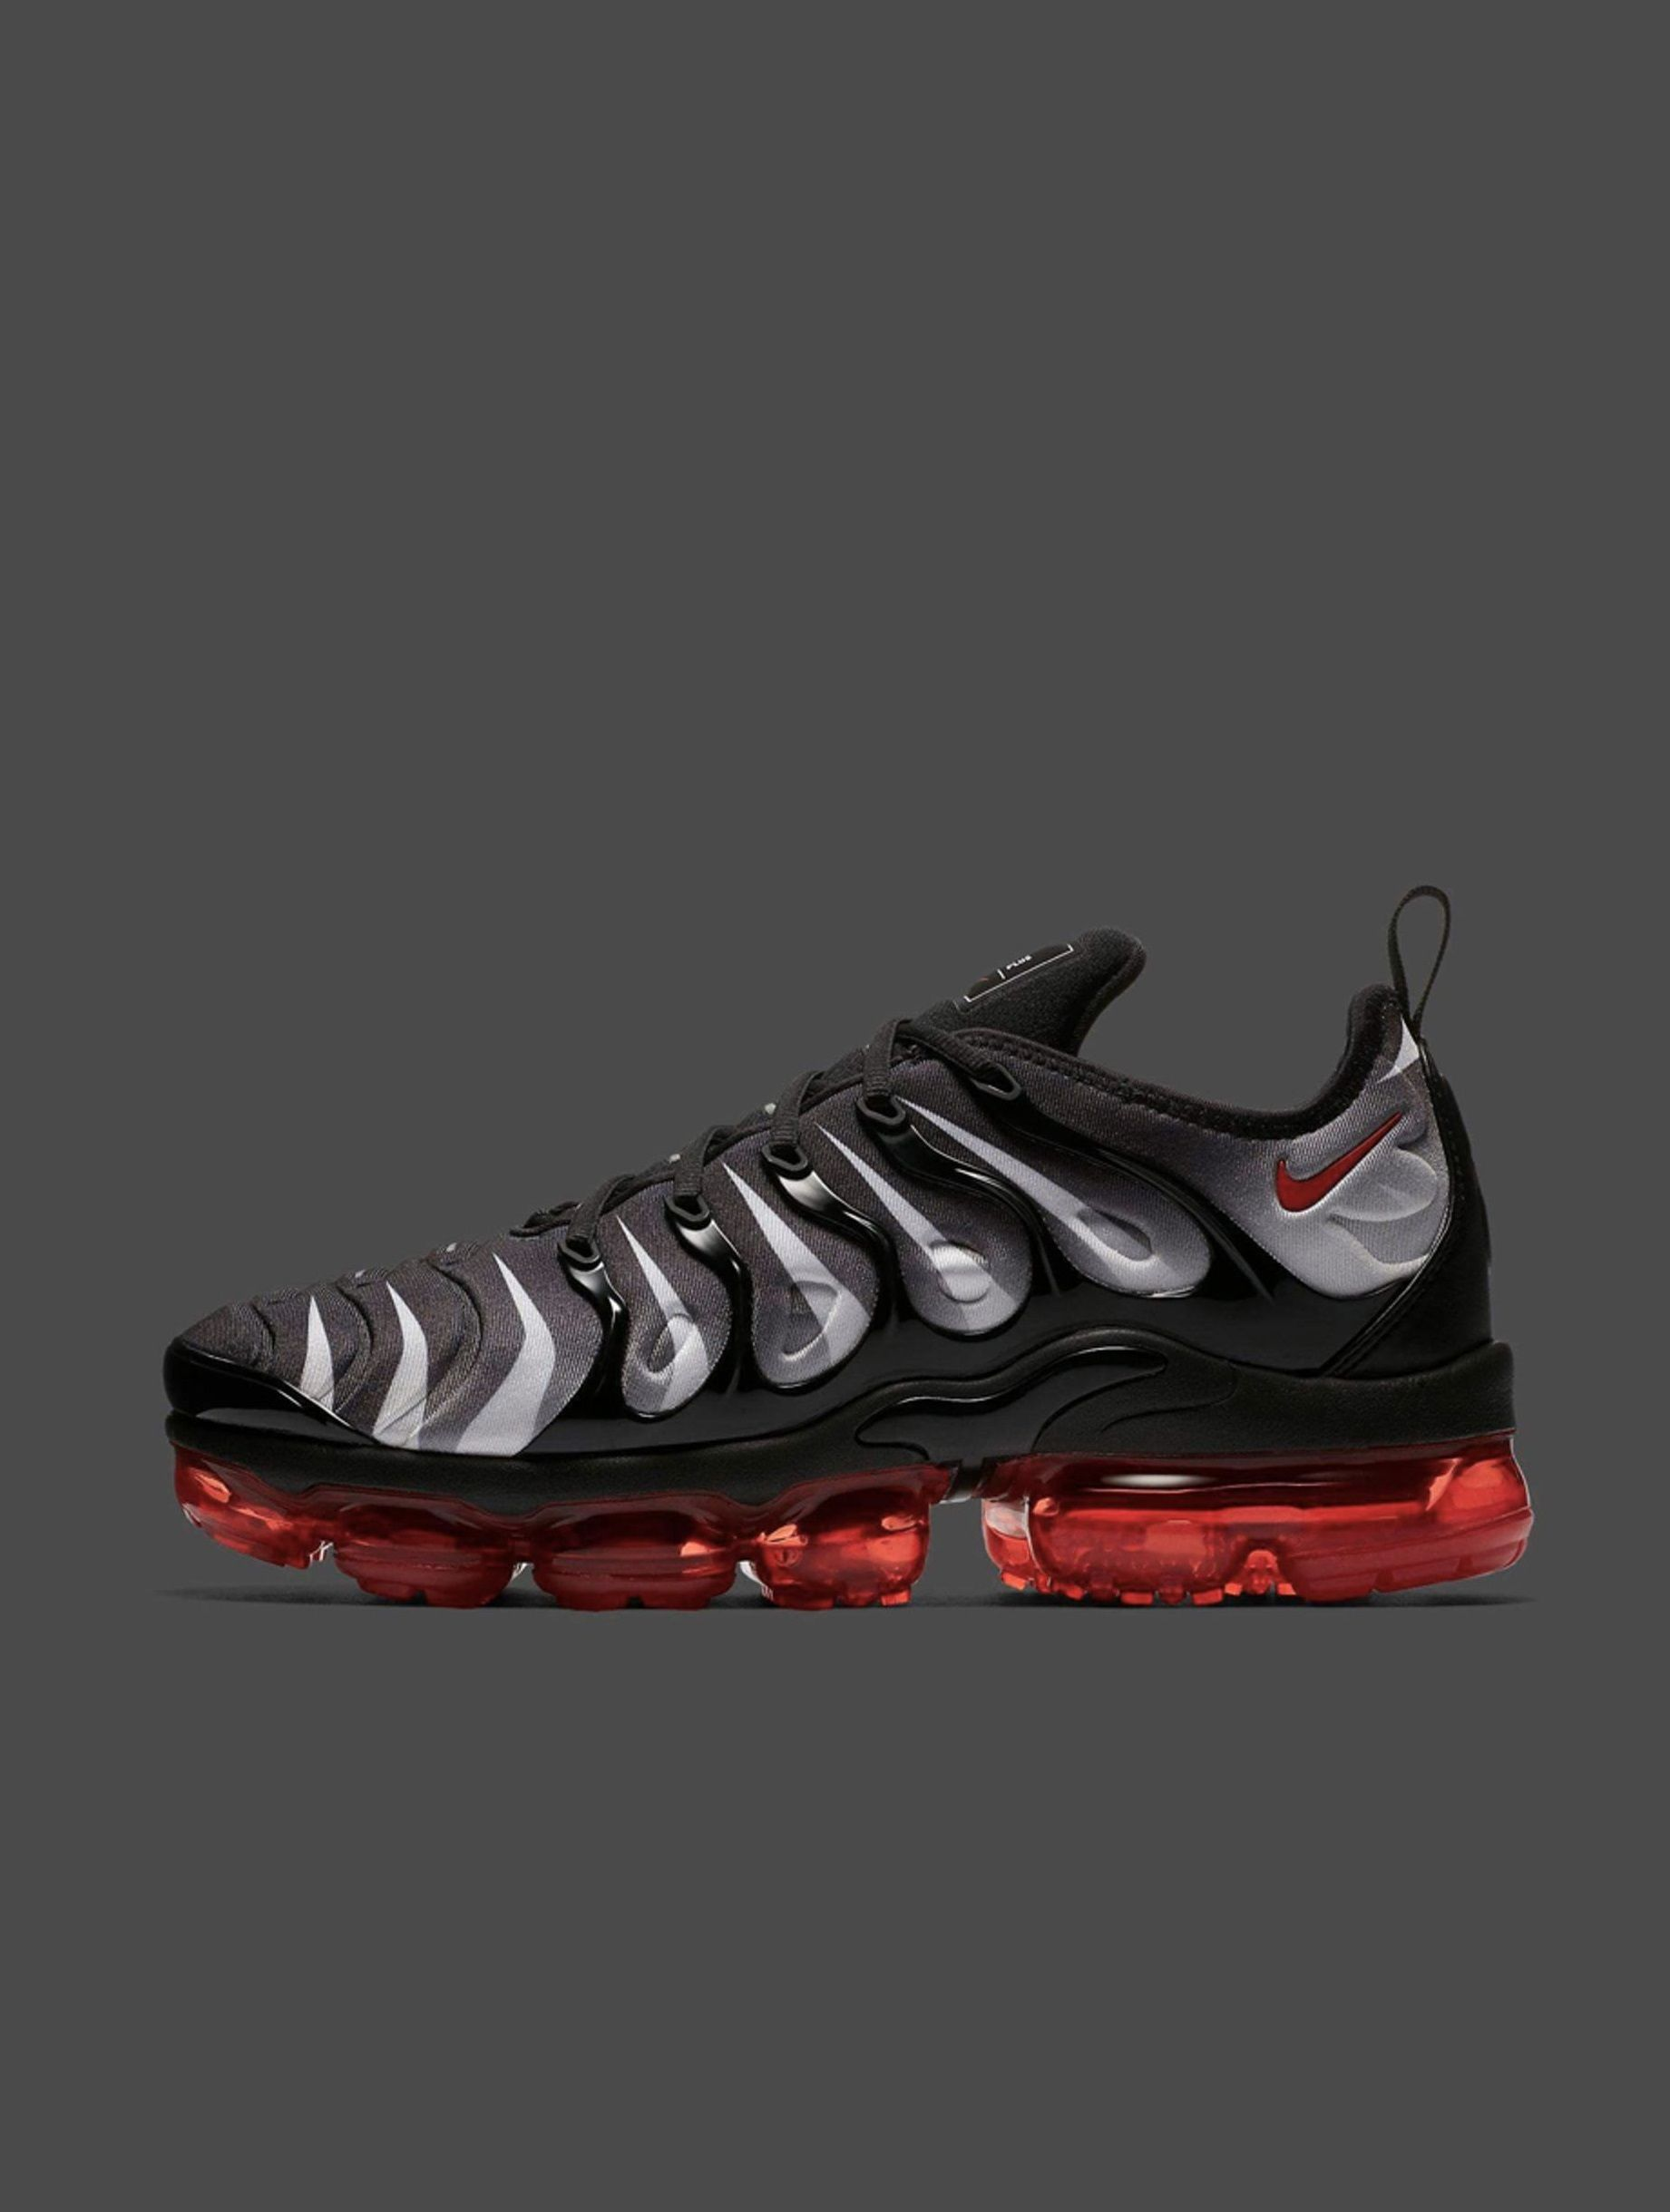 89ba508940a0 Nike Air Vapormax Plus